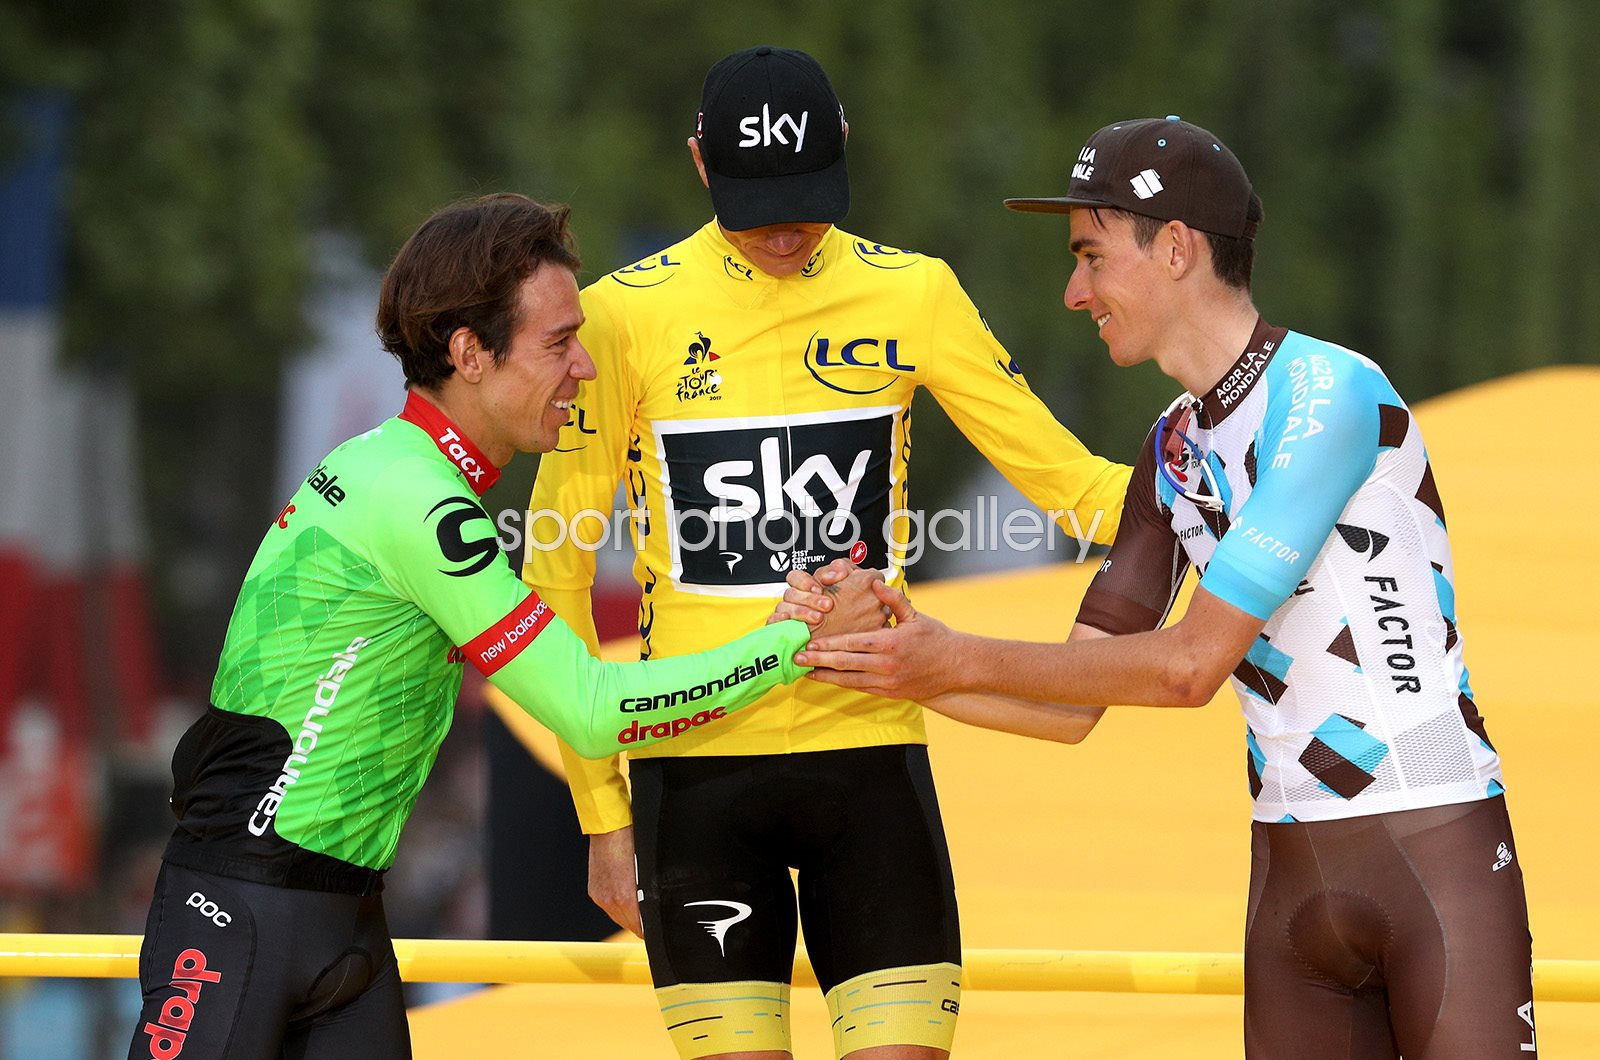 Chris Froome Rigoberto Uran & Romain Bardet Podium Paris 2017